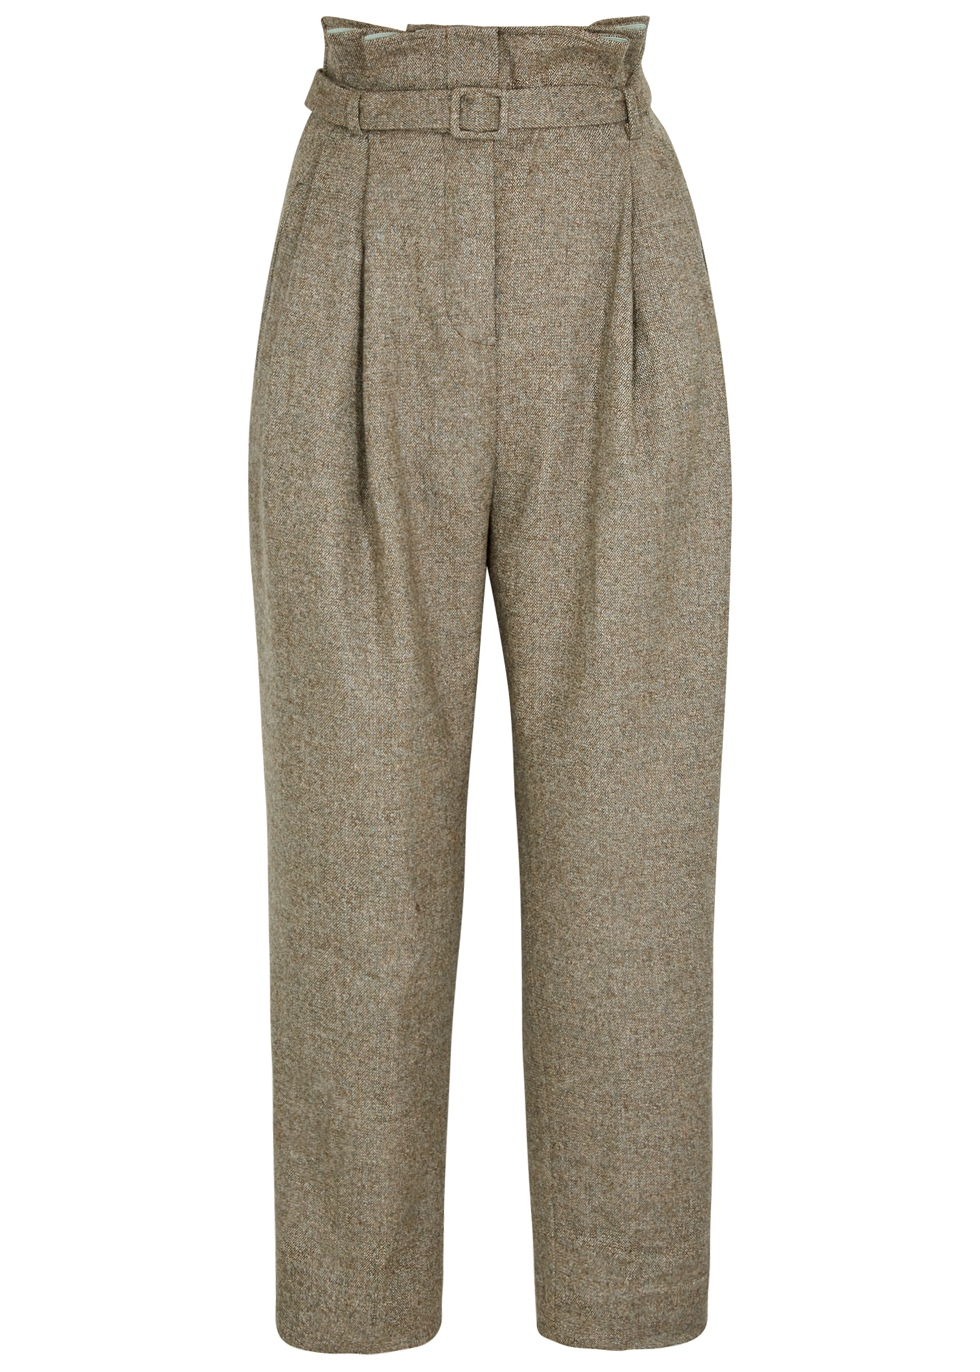 ANNA OCTOBER TWEED TAPERED-LEG TROUSERS